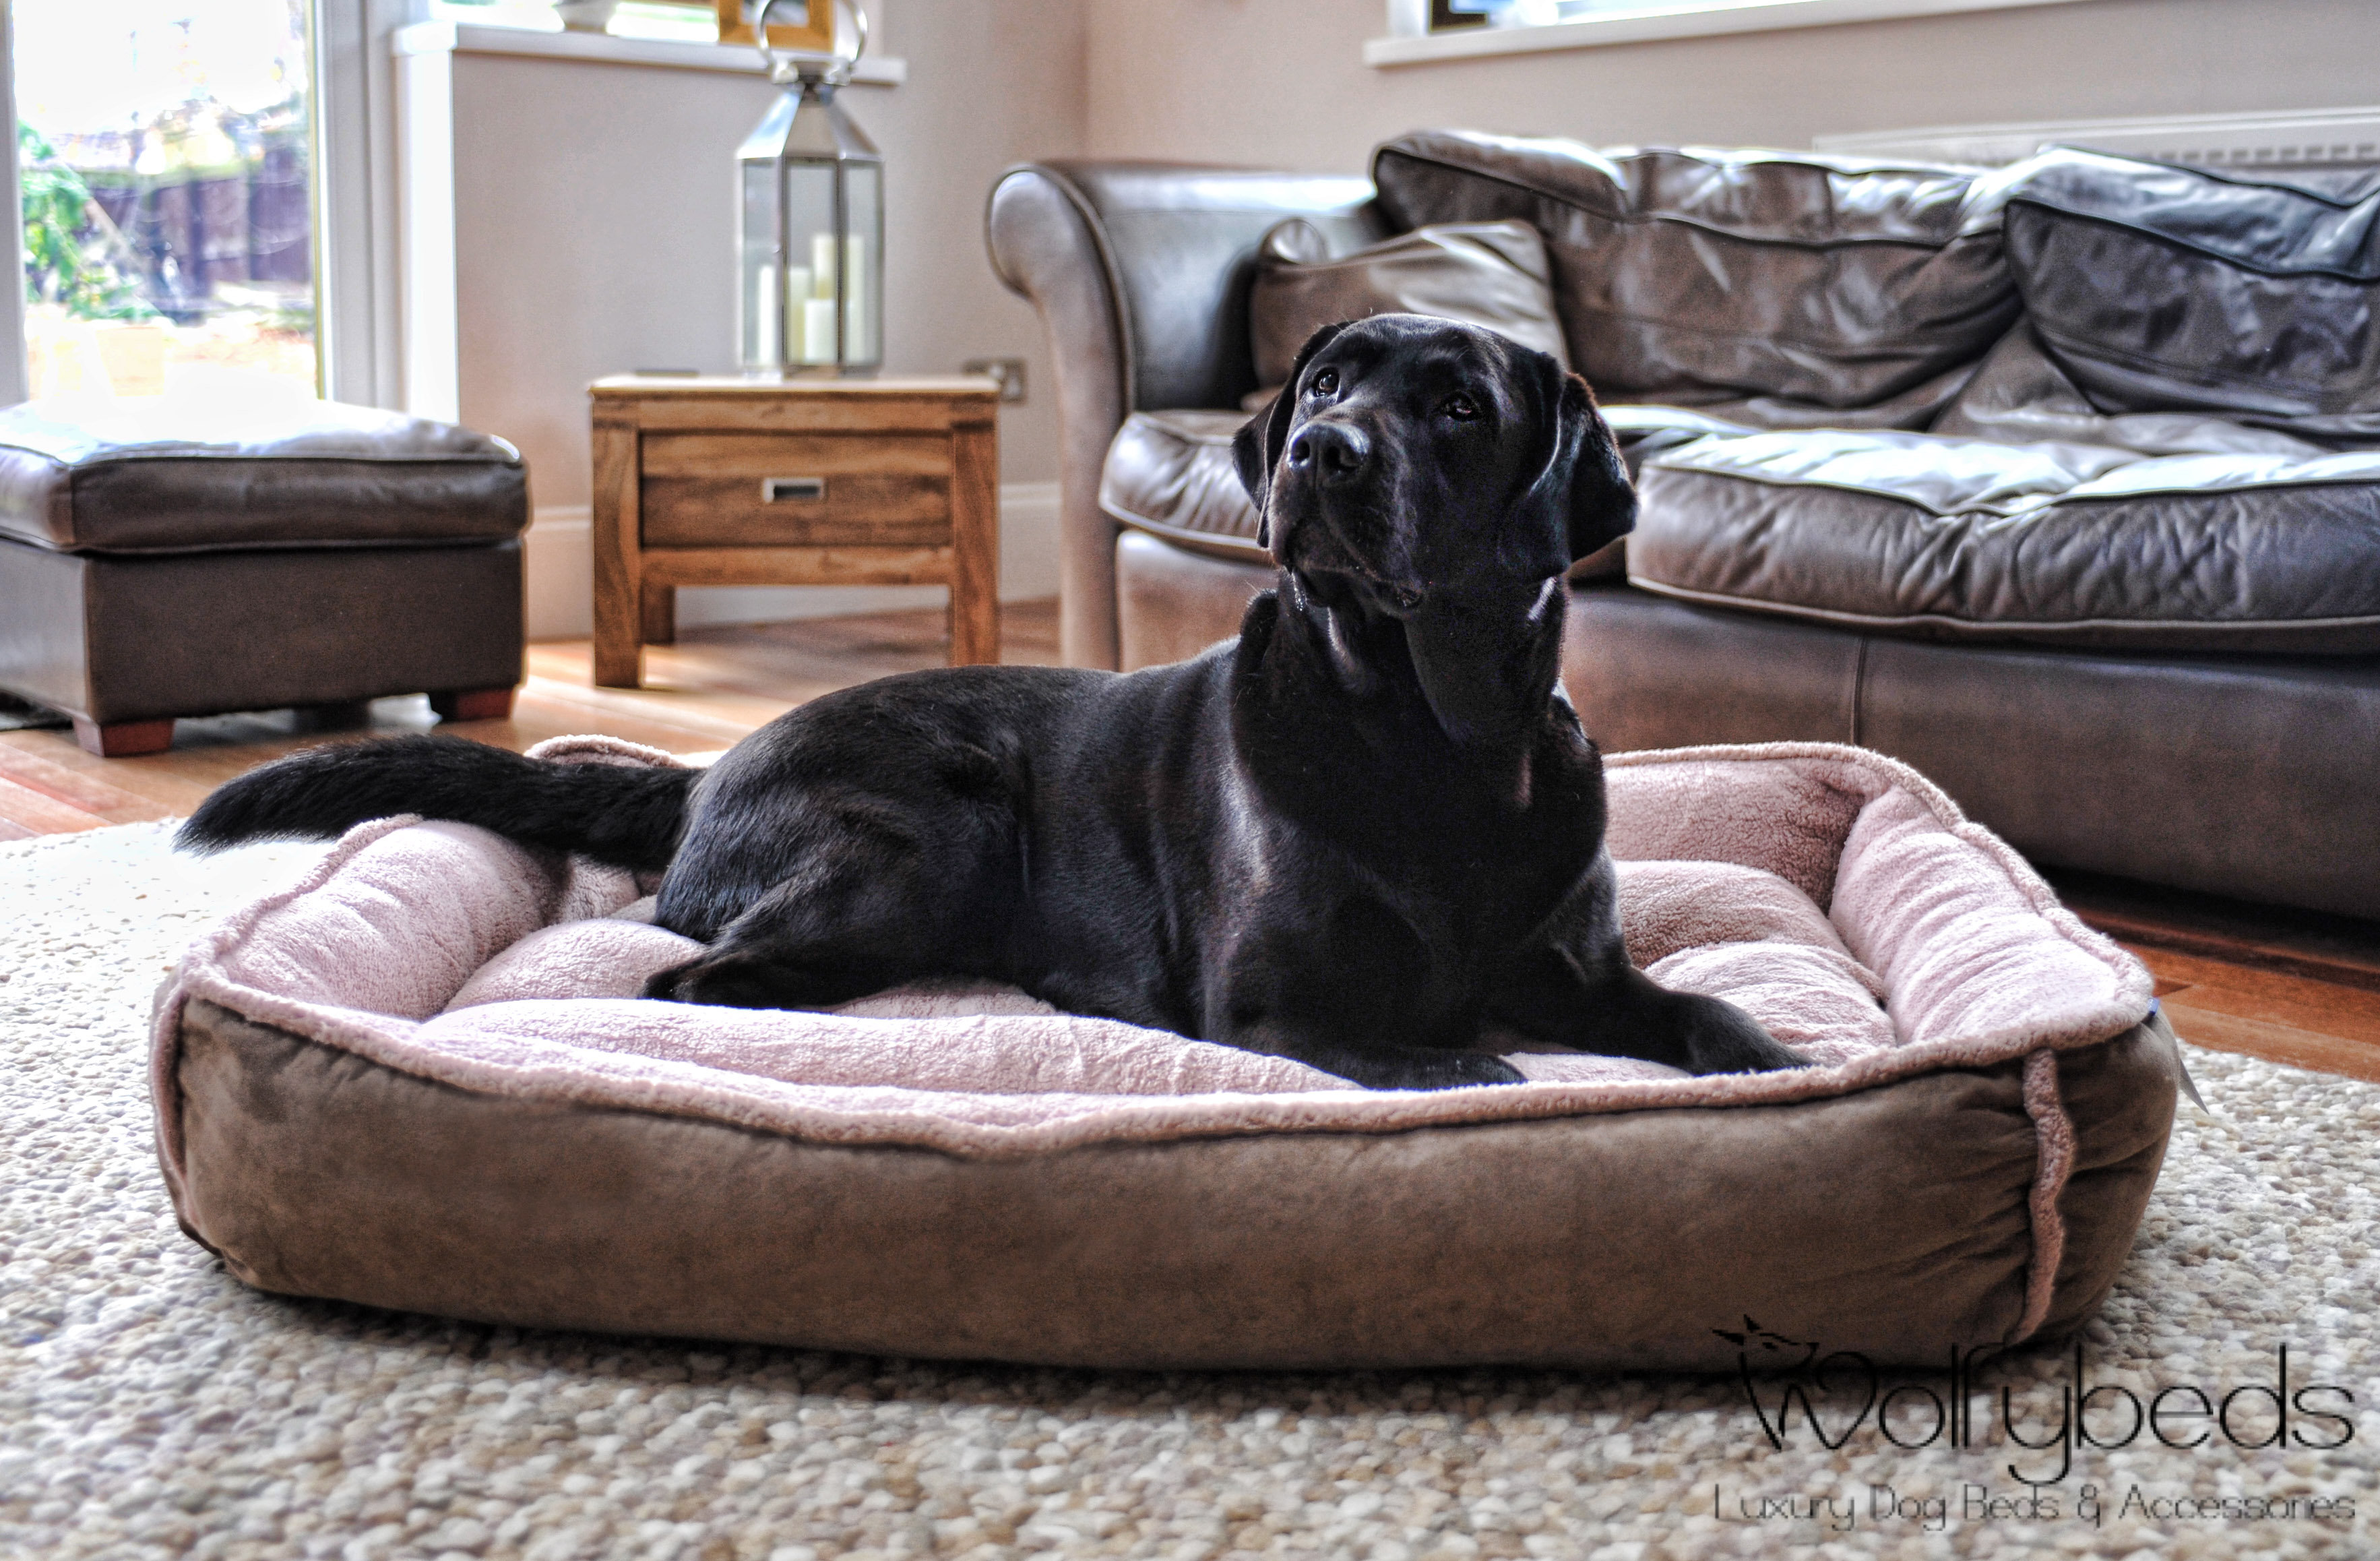 Large Luxury Dog Beds Amp Accessories Uk Wolfybeds